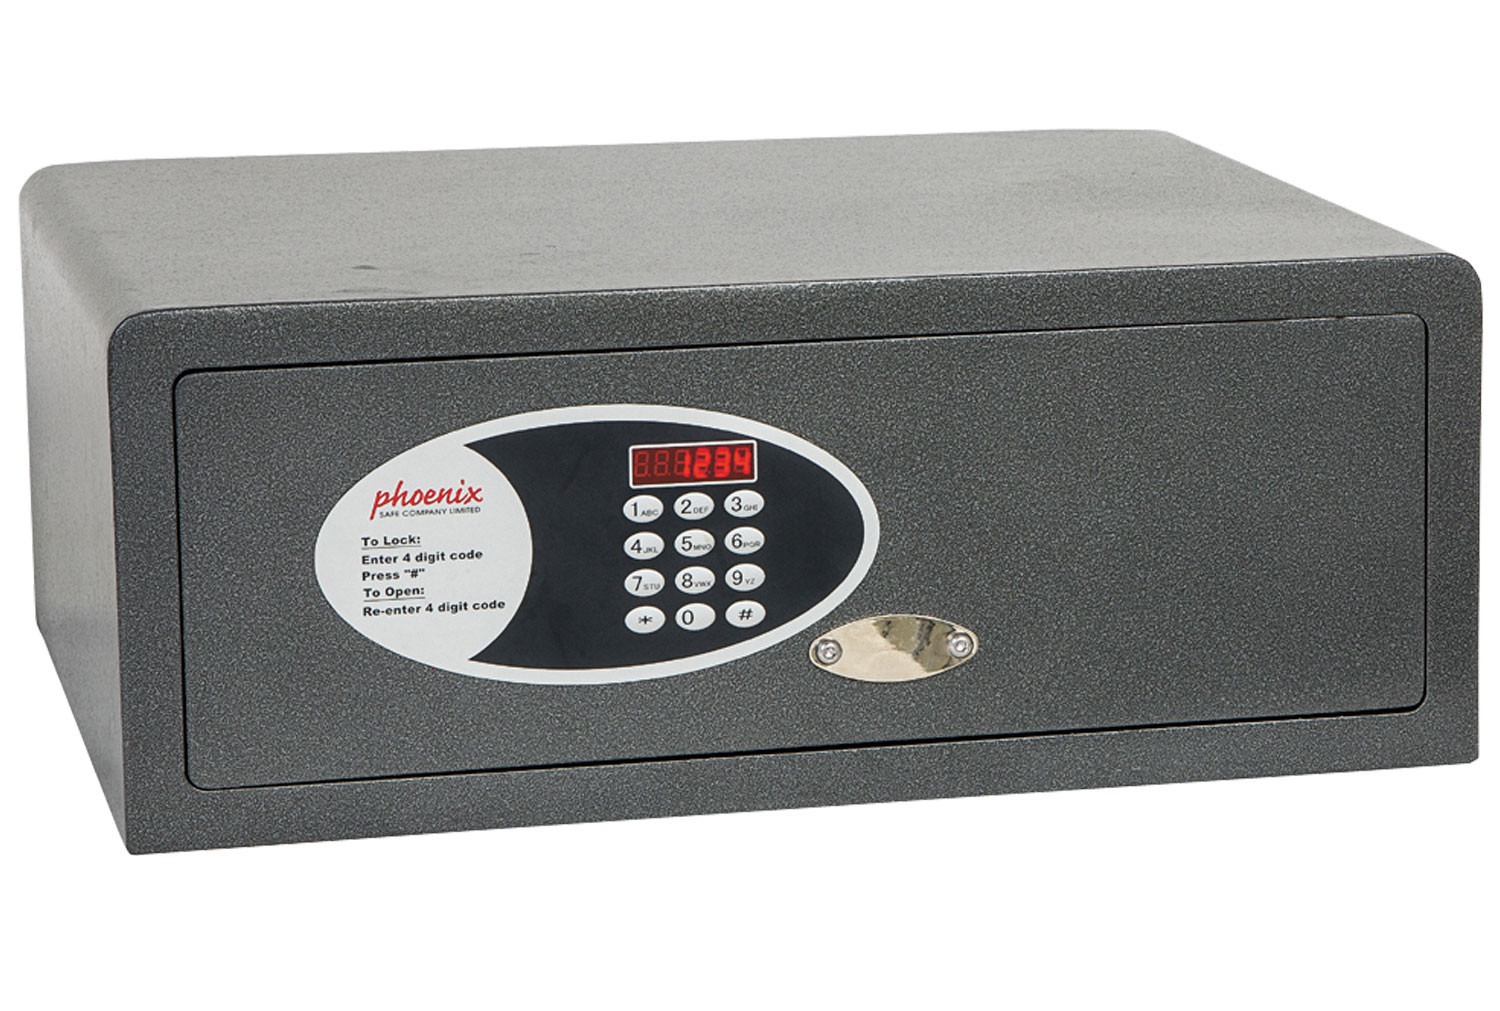 Phoenix Dione SS0311E Hotel And Laptop Safe With Electronic Lock (35ltrs)